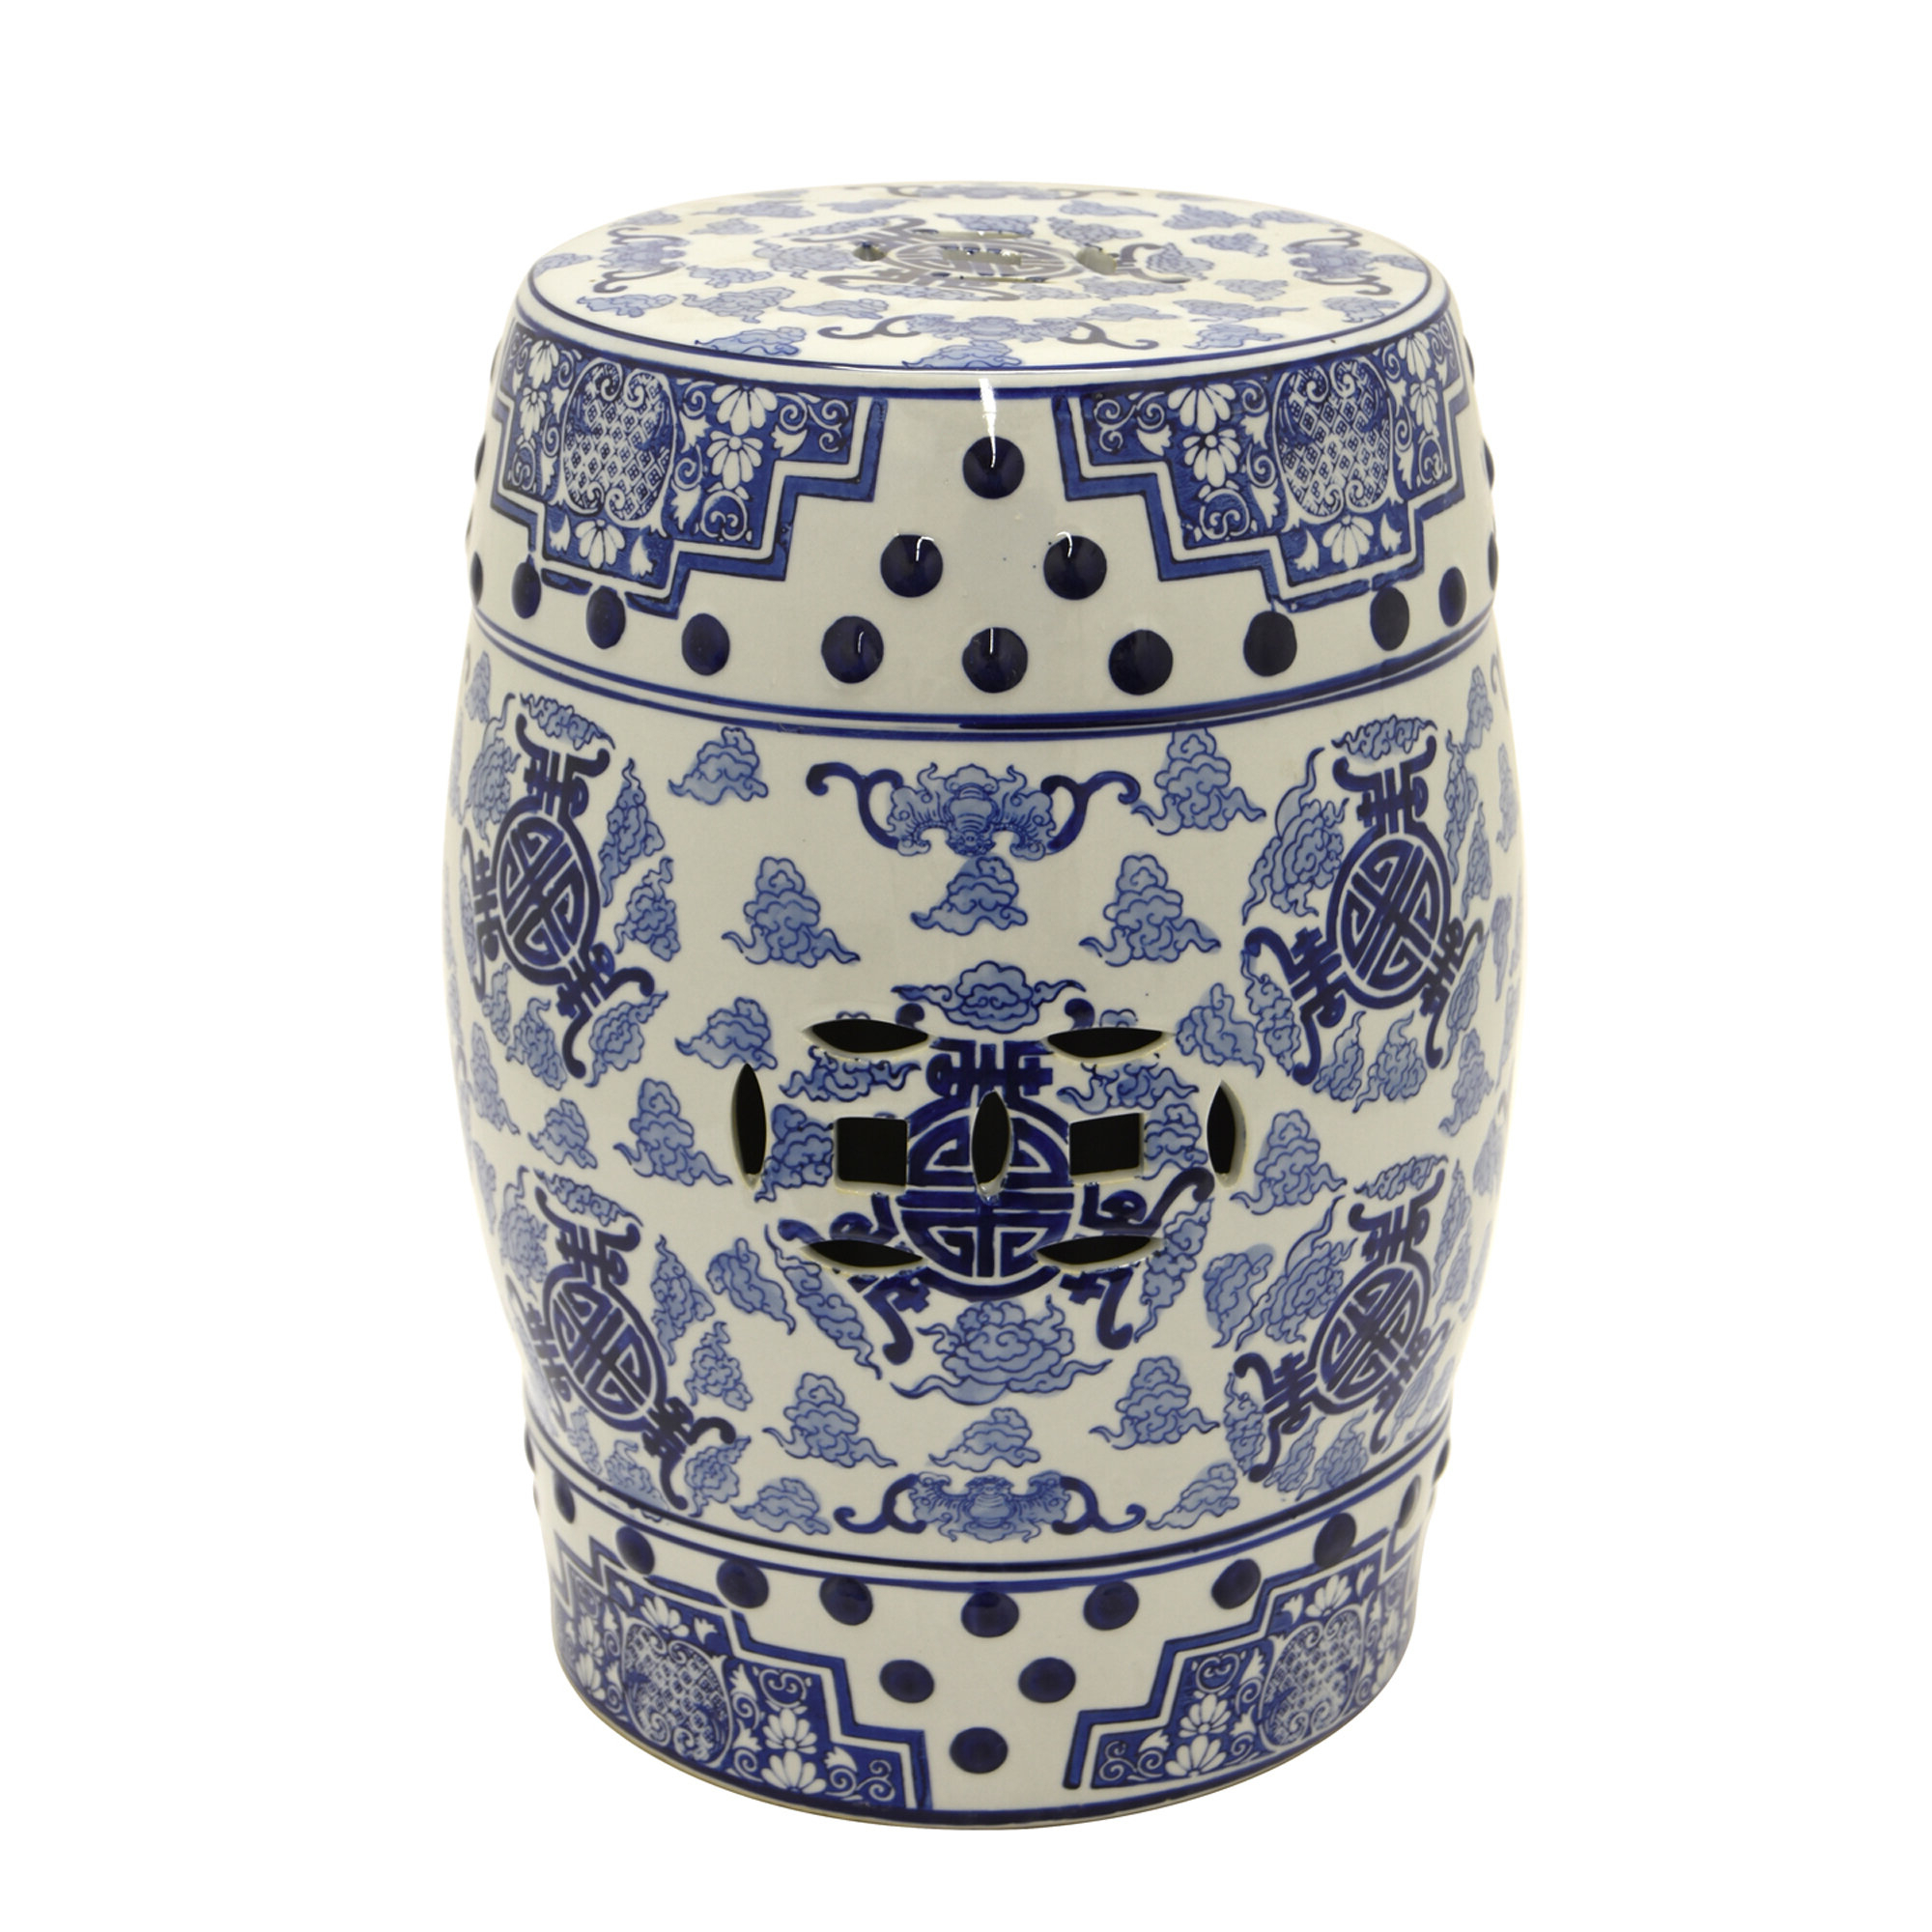 Well Liked Bodner Ceramic Garden Stool Within Wiese Cherry Blossom Ceramic Garden Stools (View 5 of 30)